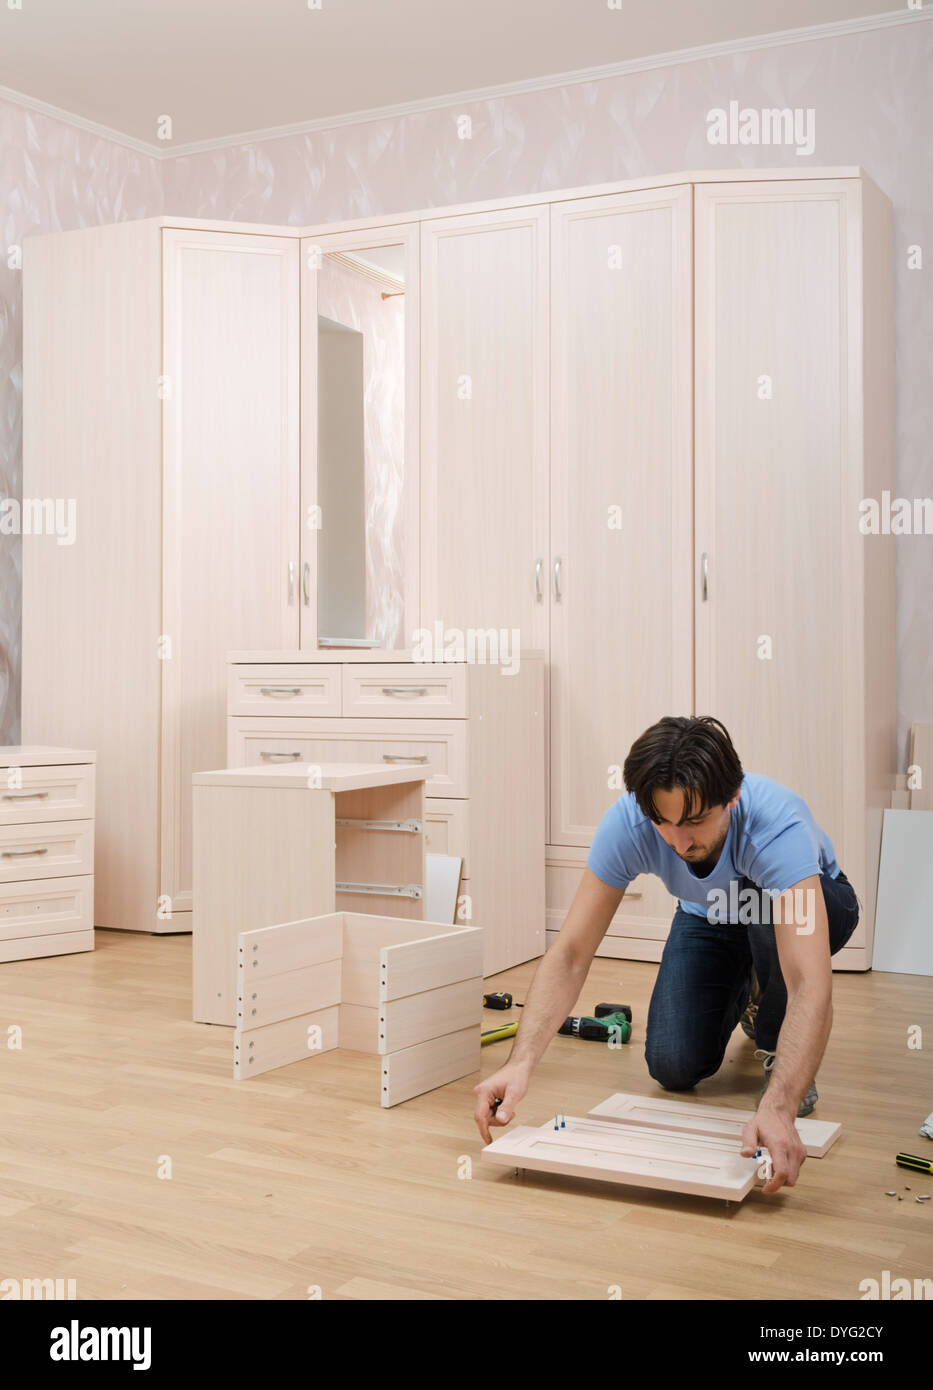 master collects in room set to furniture - Stock Image